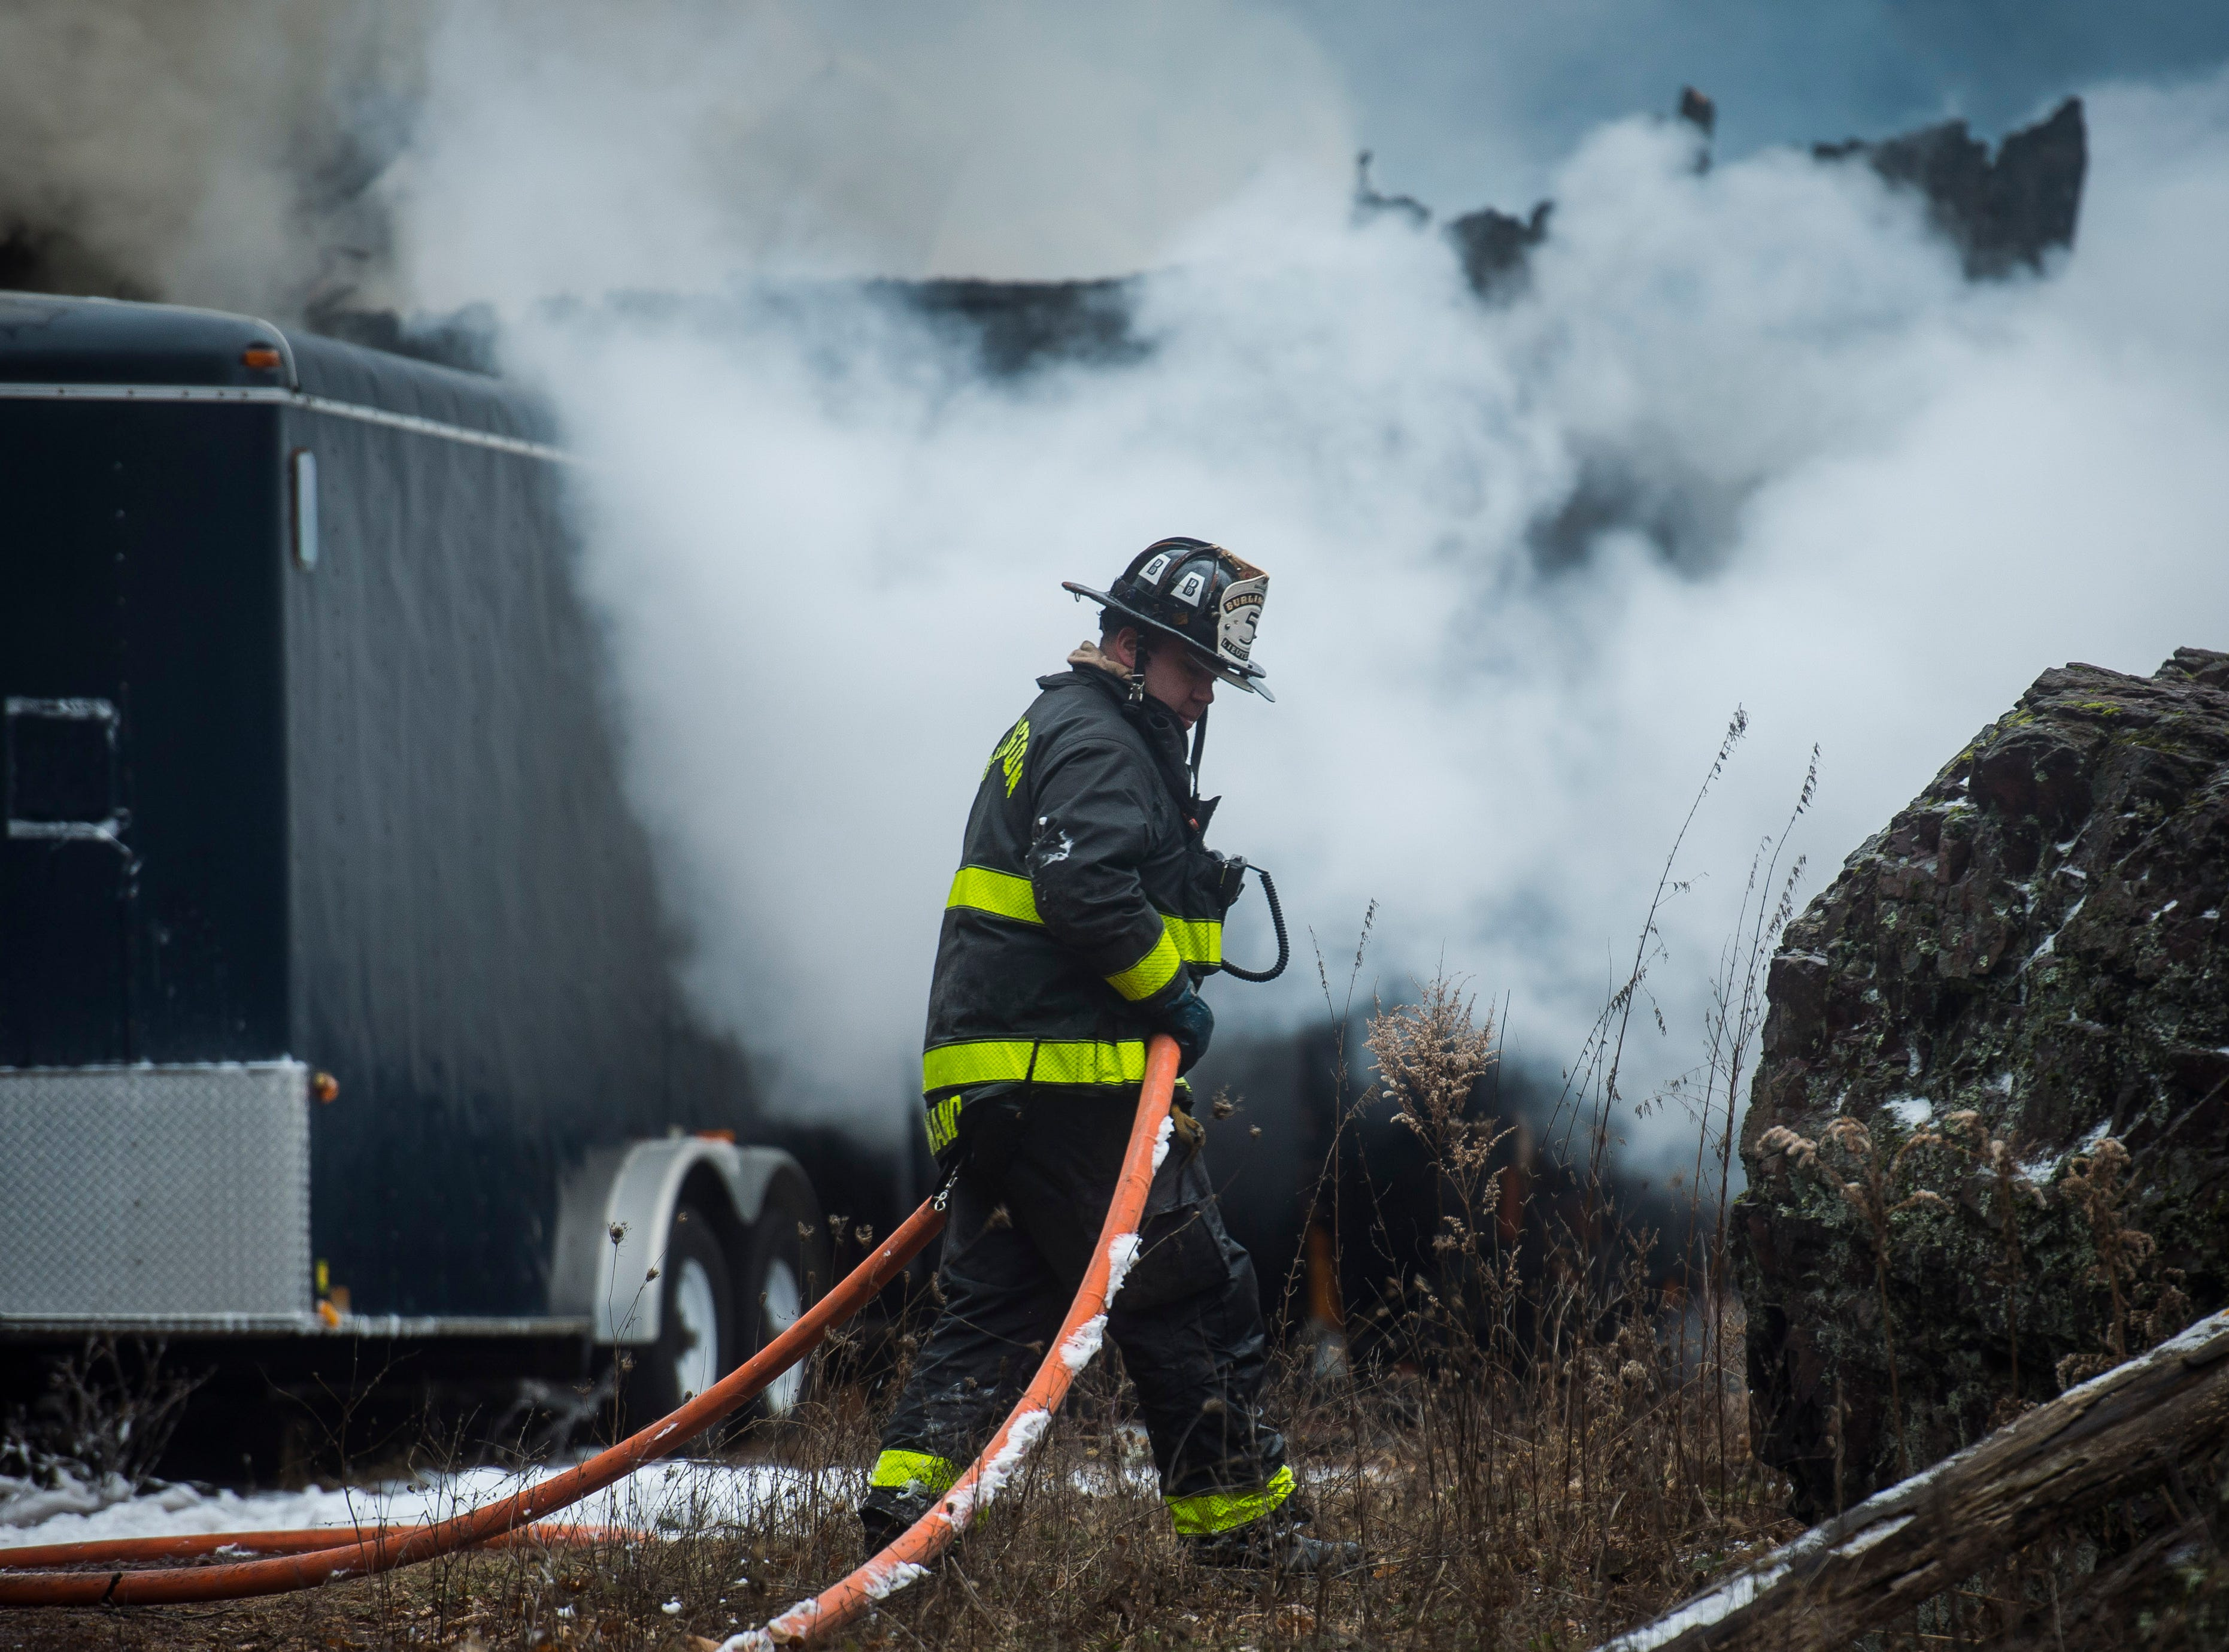 Shelburne firefighters, with mutual aid from Burlington, South Burlington and Charlotte, responded to a full-involved barn fire off Harbor Road in Shelburne Tuesday afternoon. The blaze engulfed more than half the structure by the time crews arrives and was a total loss.